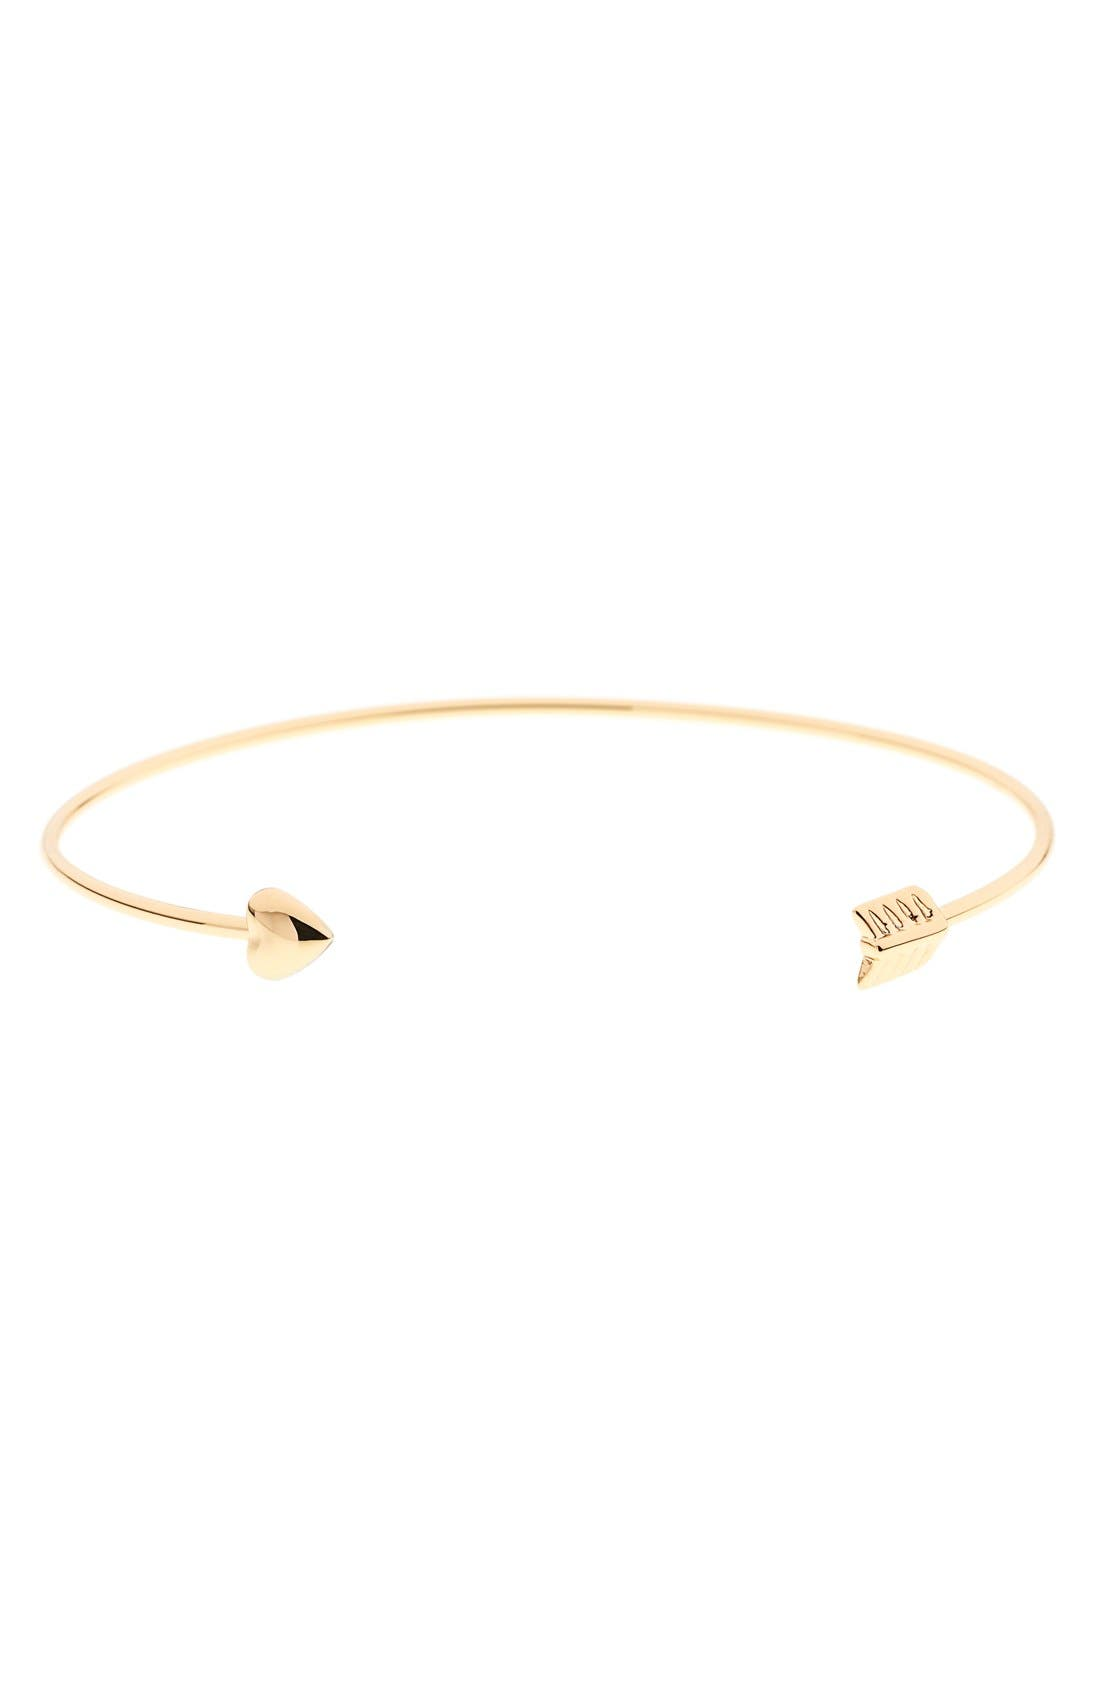 'Cupid's Arrow' Open Cuff,                             Main thumbnail 1, color,                             Gold